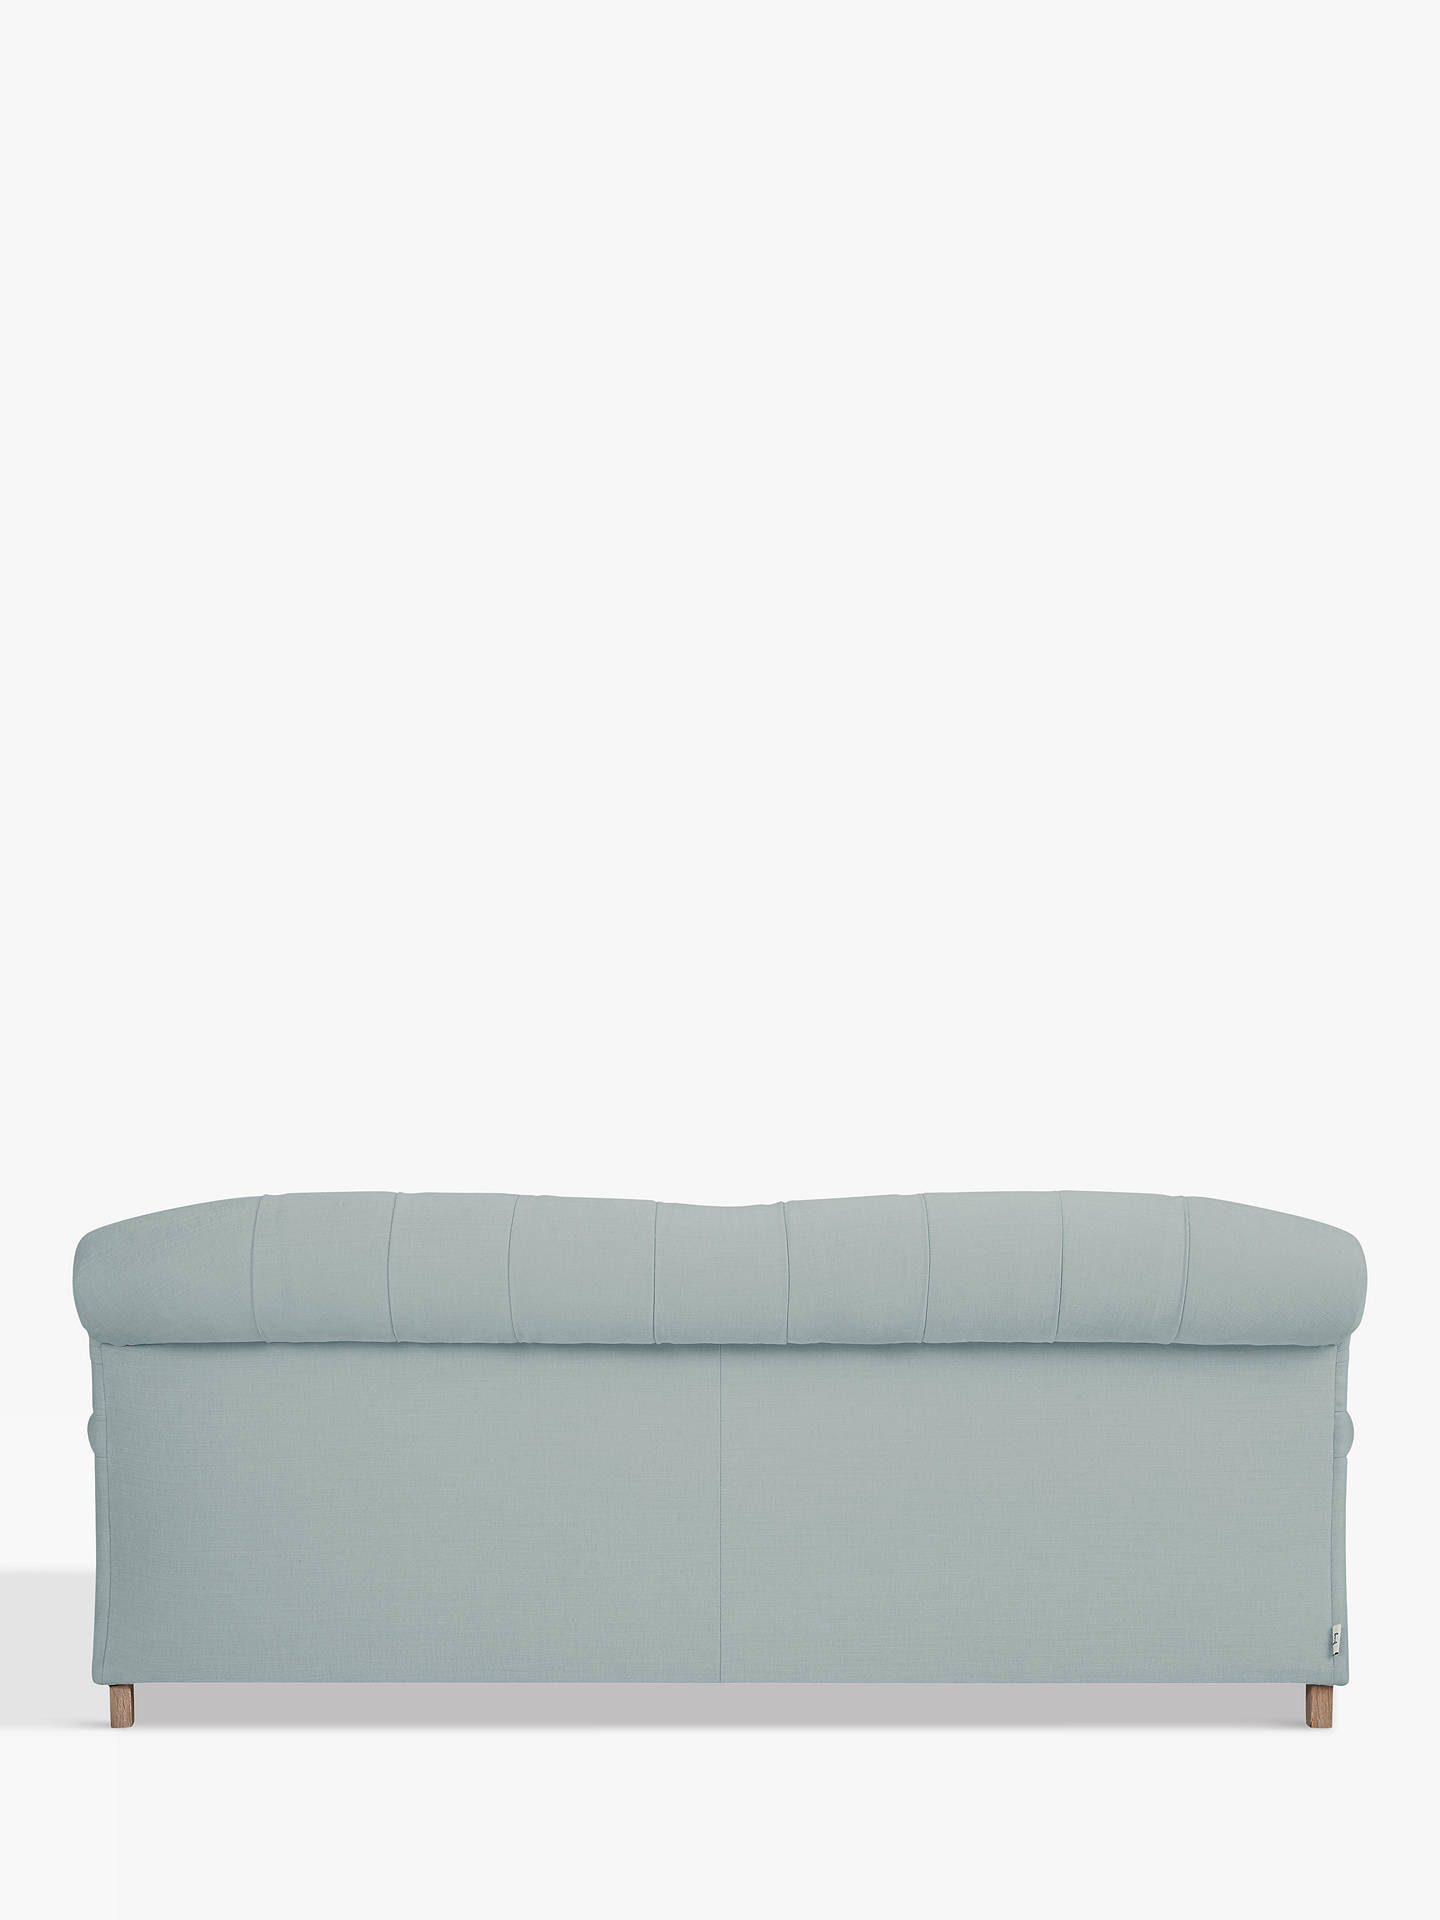 BuyCrumble Large 3 Seater Sofa by Loaf at John Lewis in Clever Linen Quails Egg, Light Leg Online at johnlewis.com